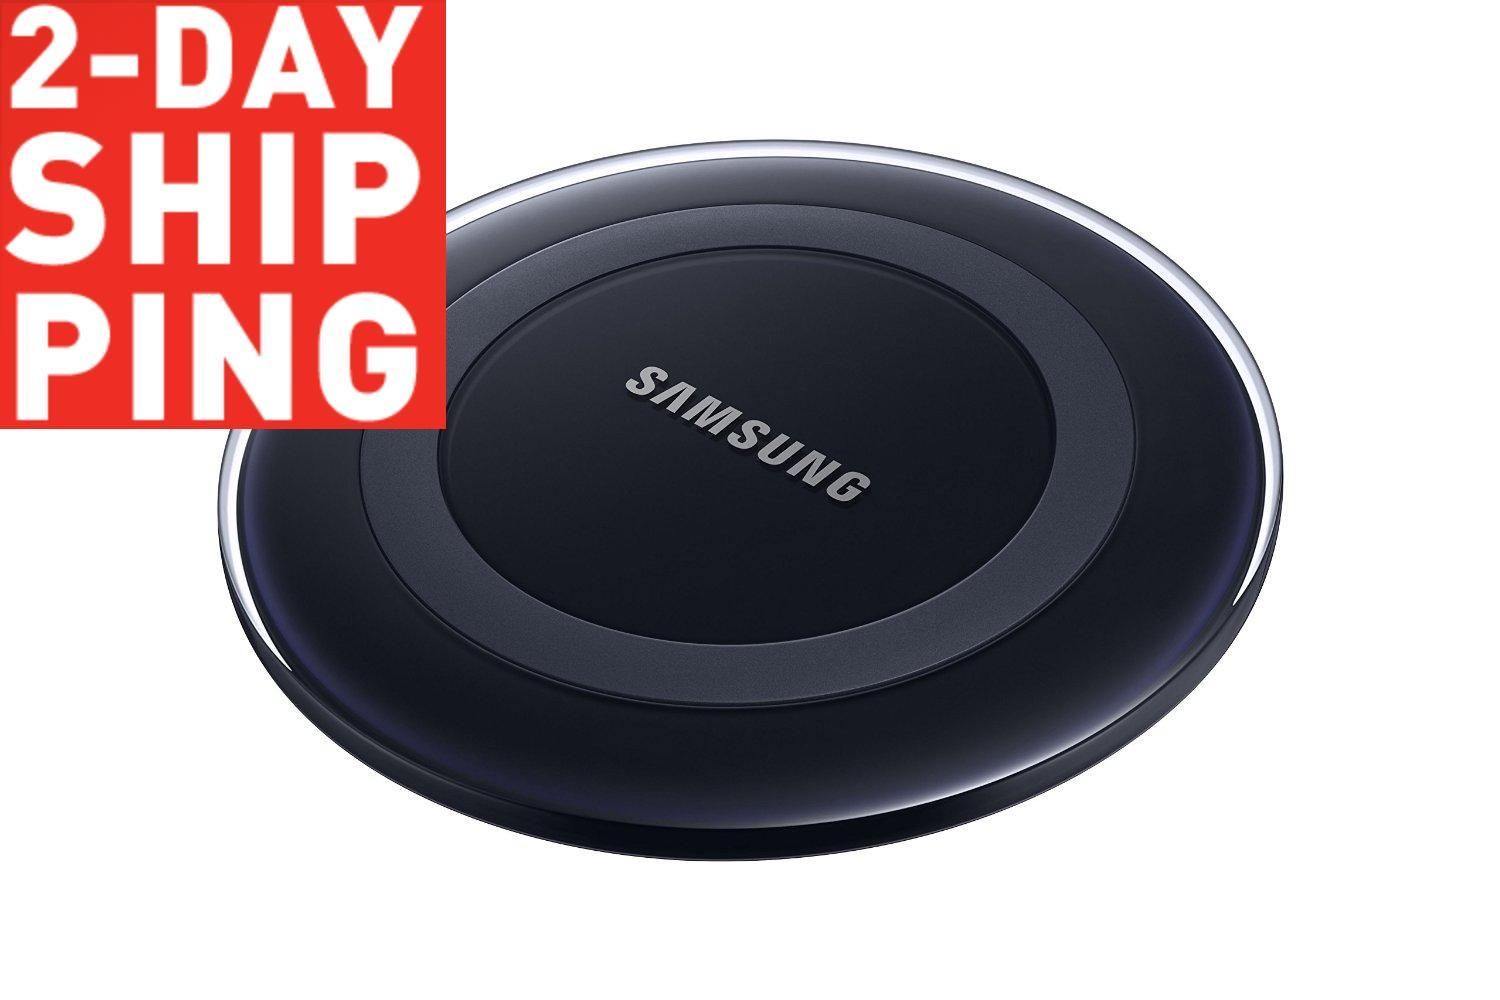 Samsung Wireless Charging Pad w/ 2A Wall Charger Retail Packaging - Black